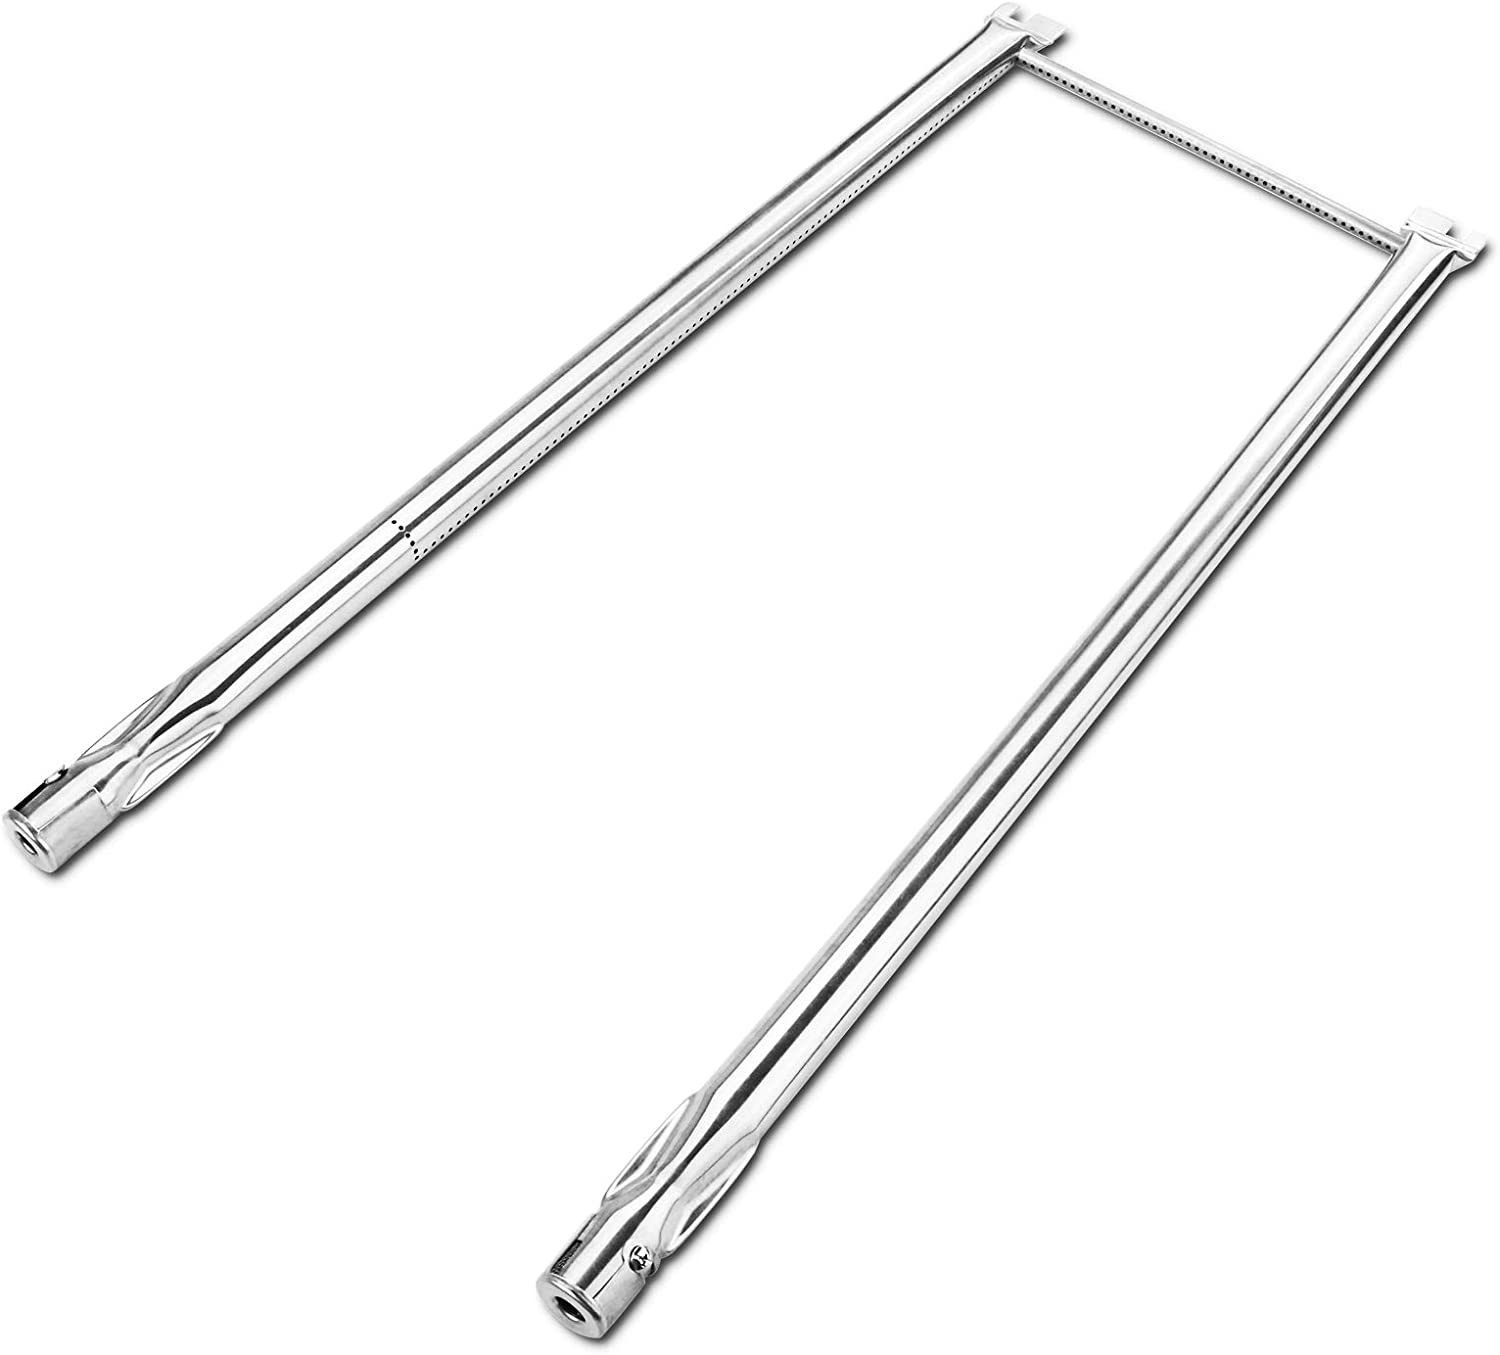 Utheer 7507 Grill Burner Tubes 27 Inch for Weber Spirit 210 Spirit E210 Spirit 200, Genesis Silver A, Spirit 500(with Side Mounted Control Panel)Grill Replacement Parts, Stainless Steel